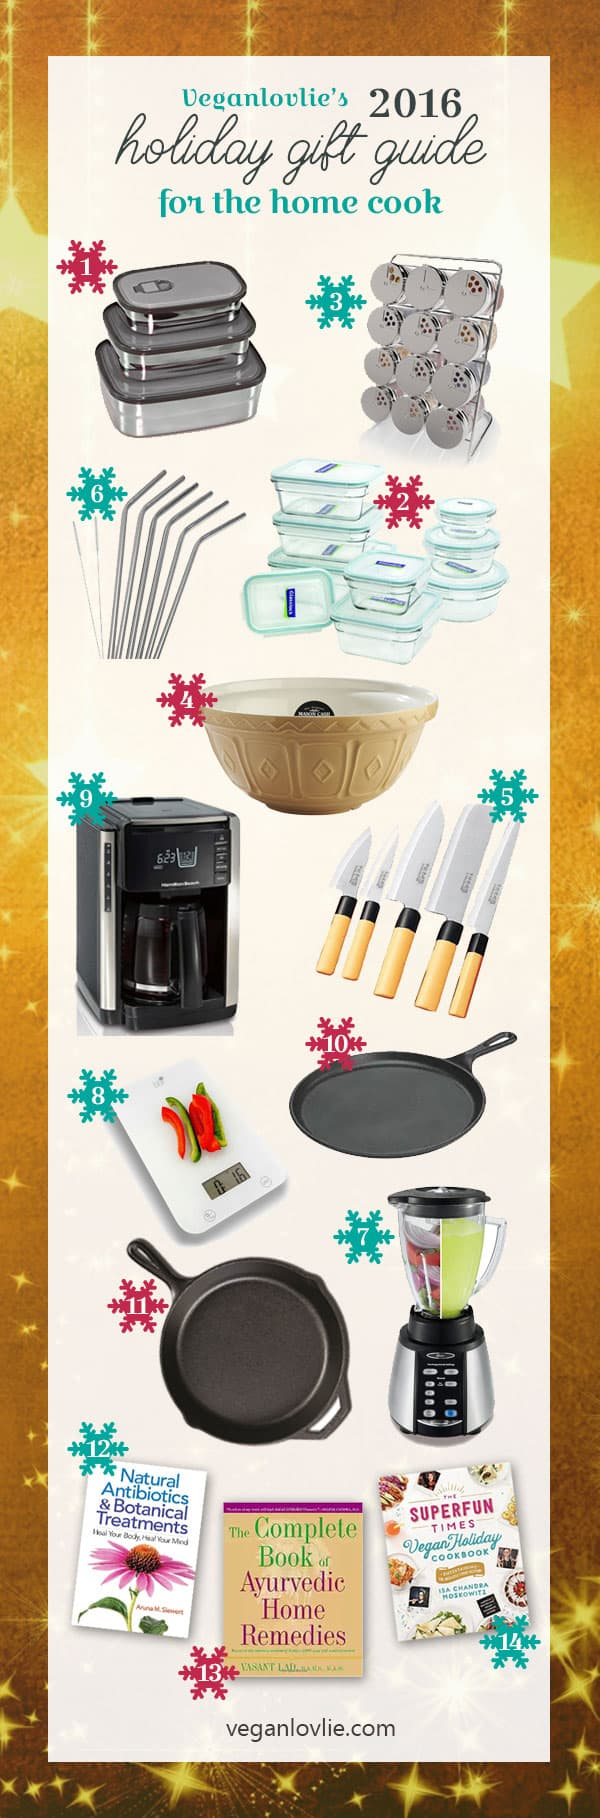 vegan holiday gift guide for the home cook